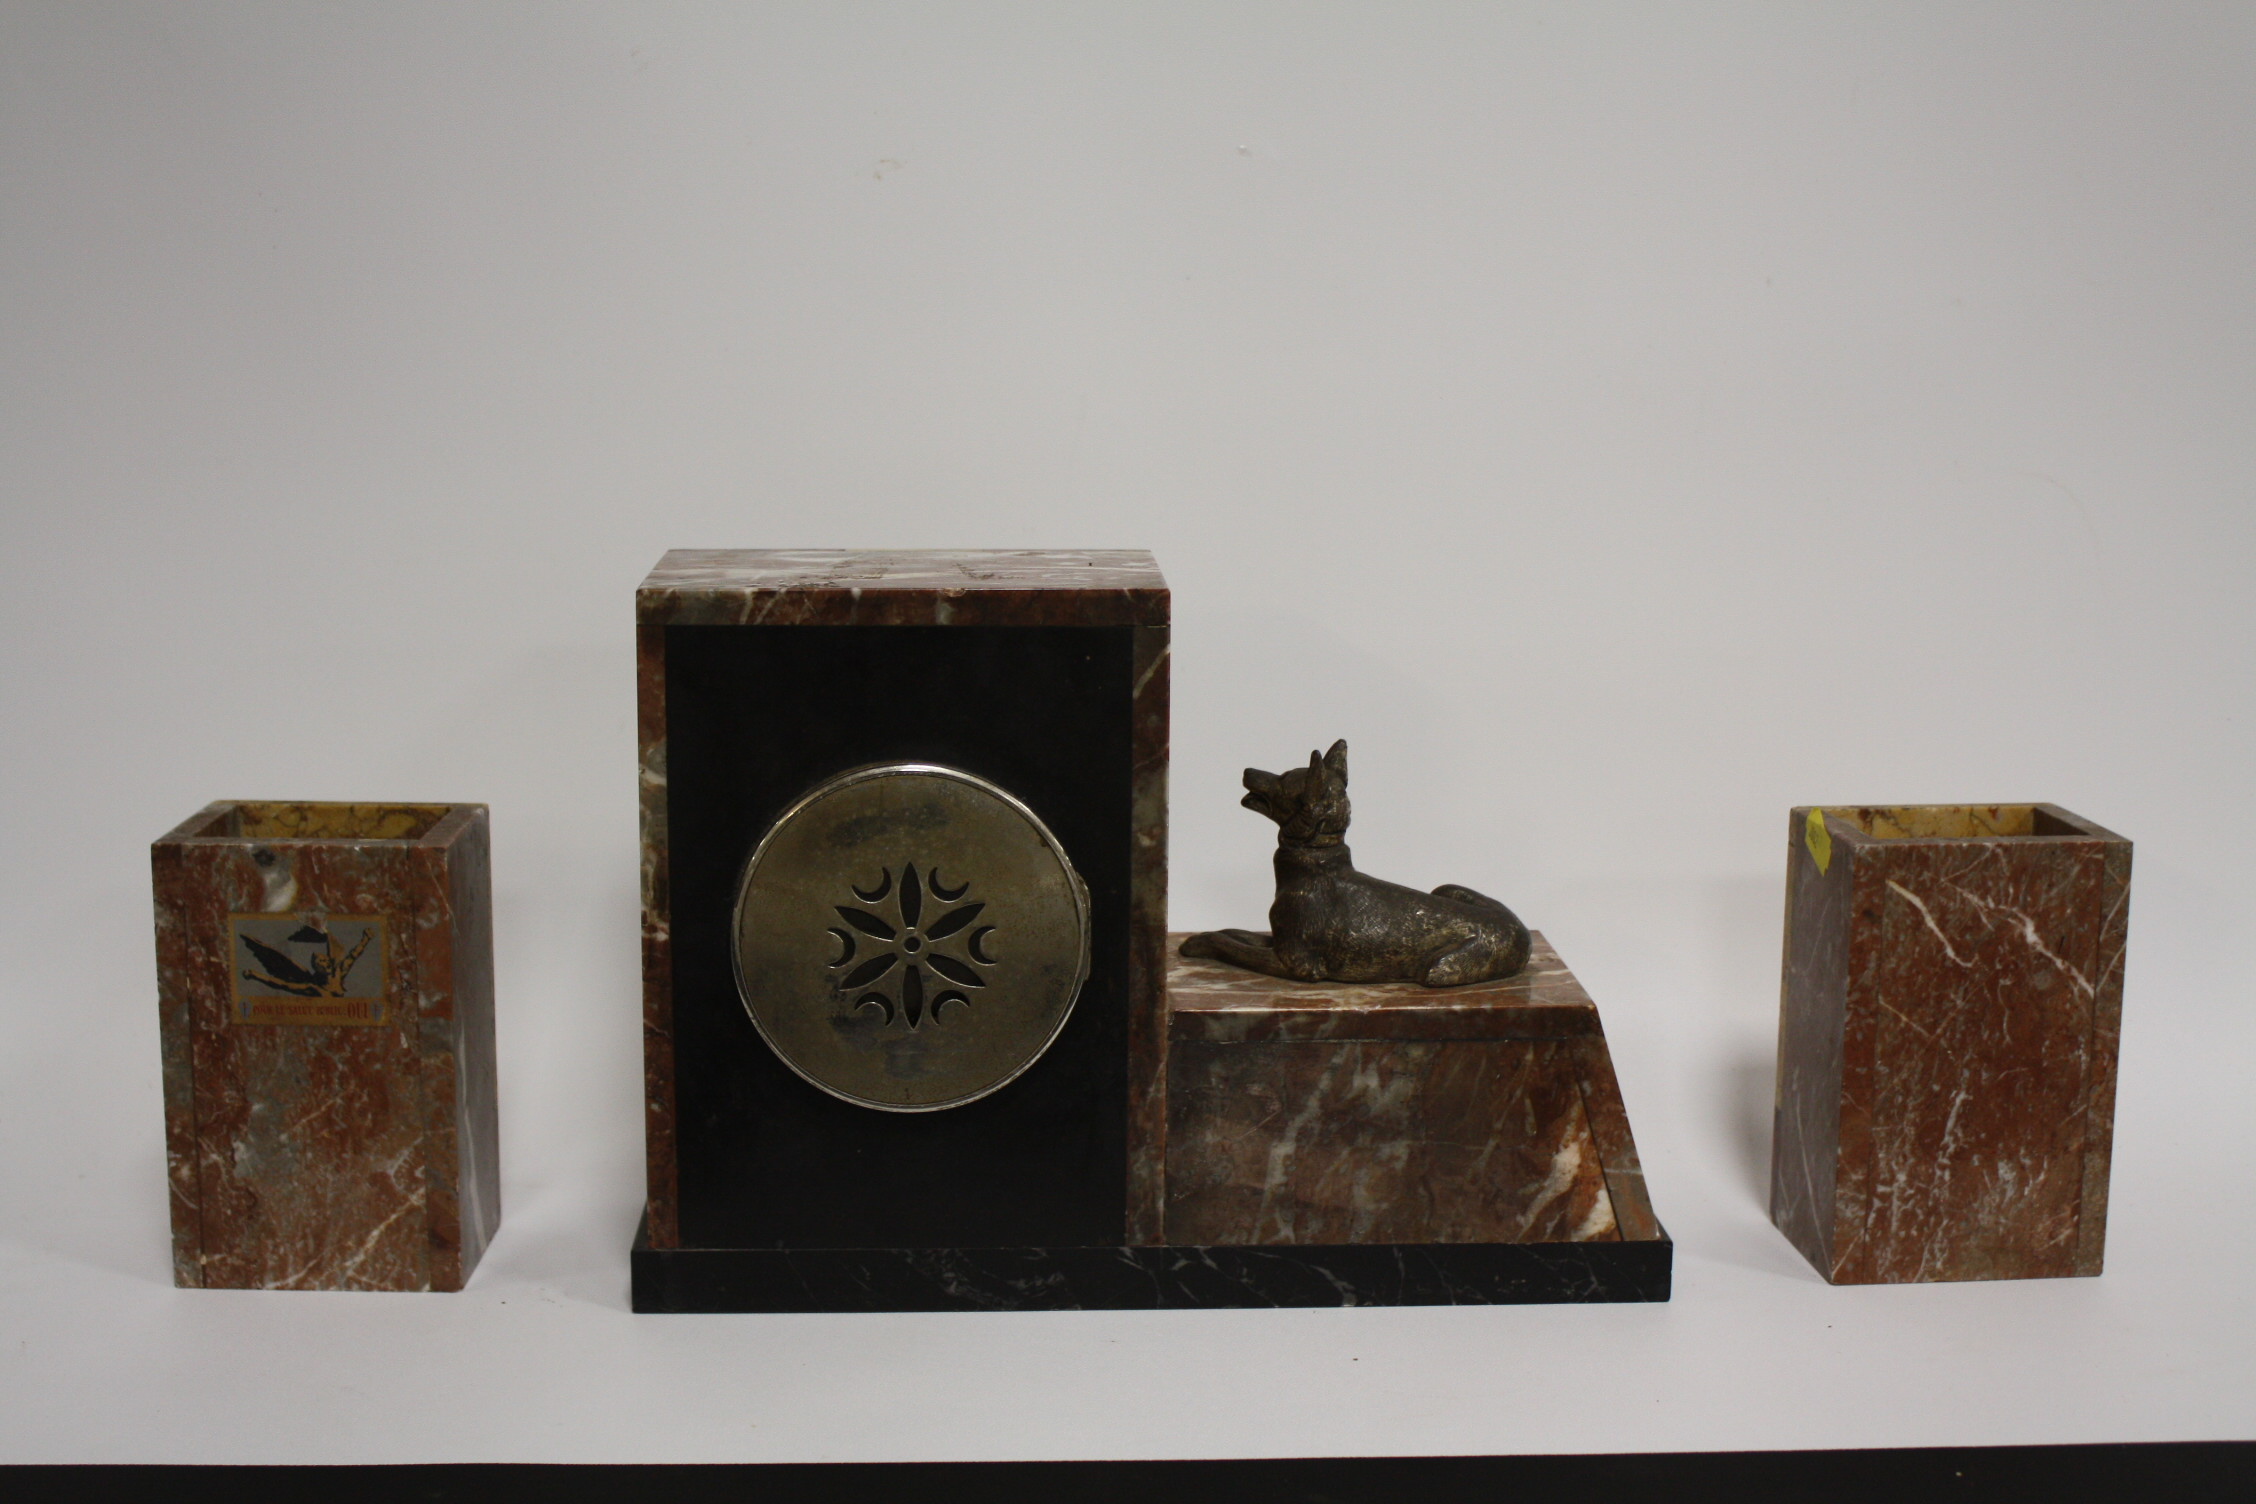 Lot 629 - A FRENCH ART DECO MARBLE CLOCK GARNITURE BY BONNETT & POTTIER, the stylized clock with mounted